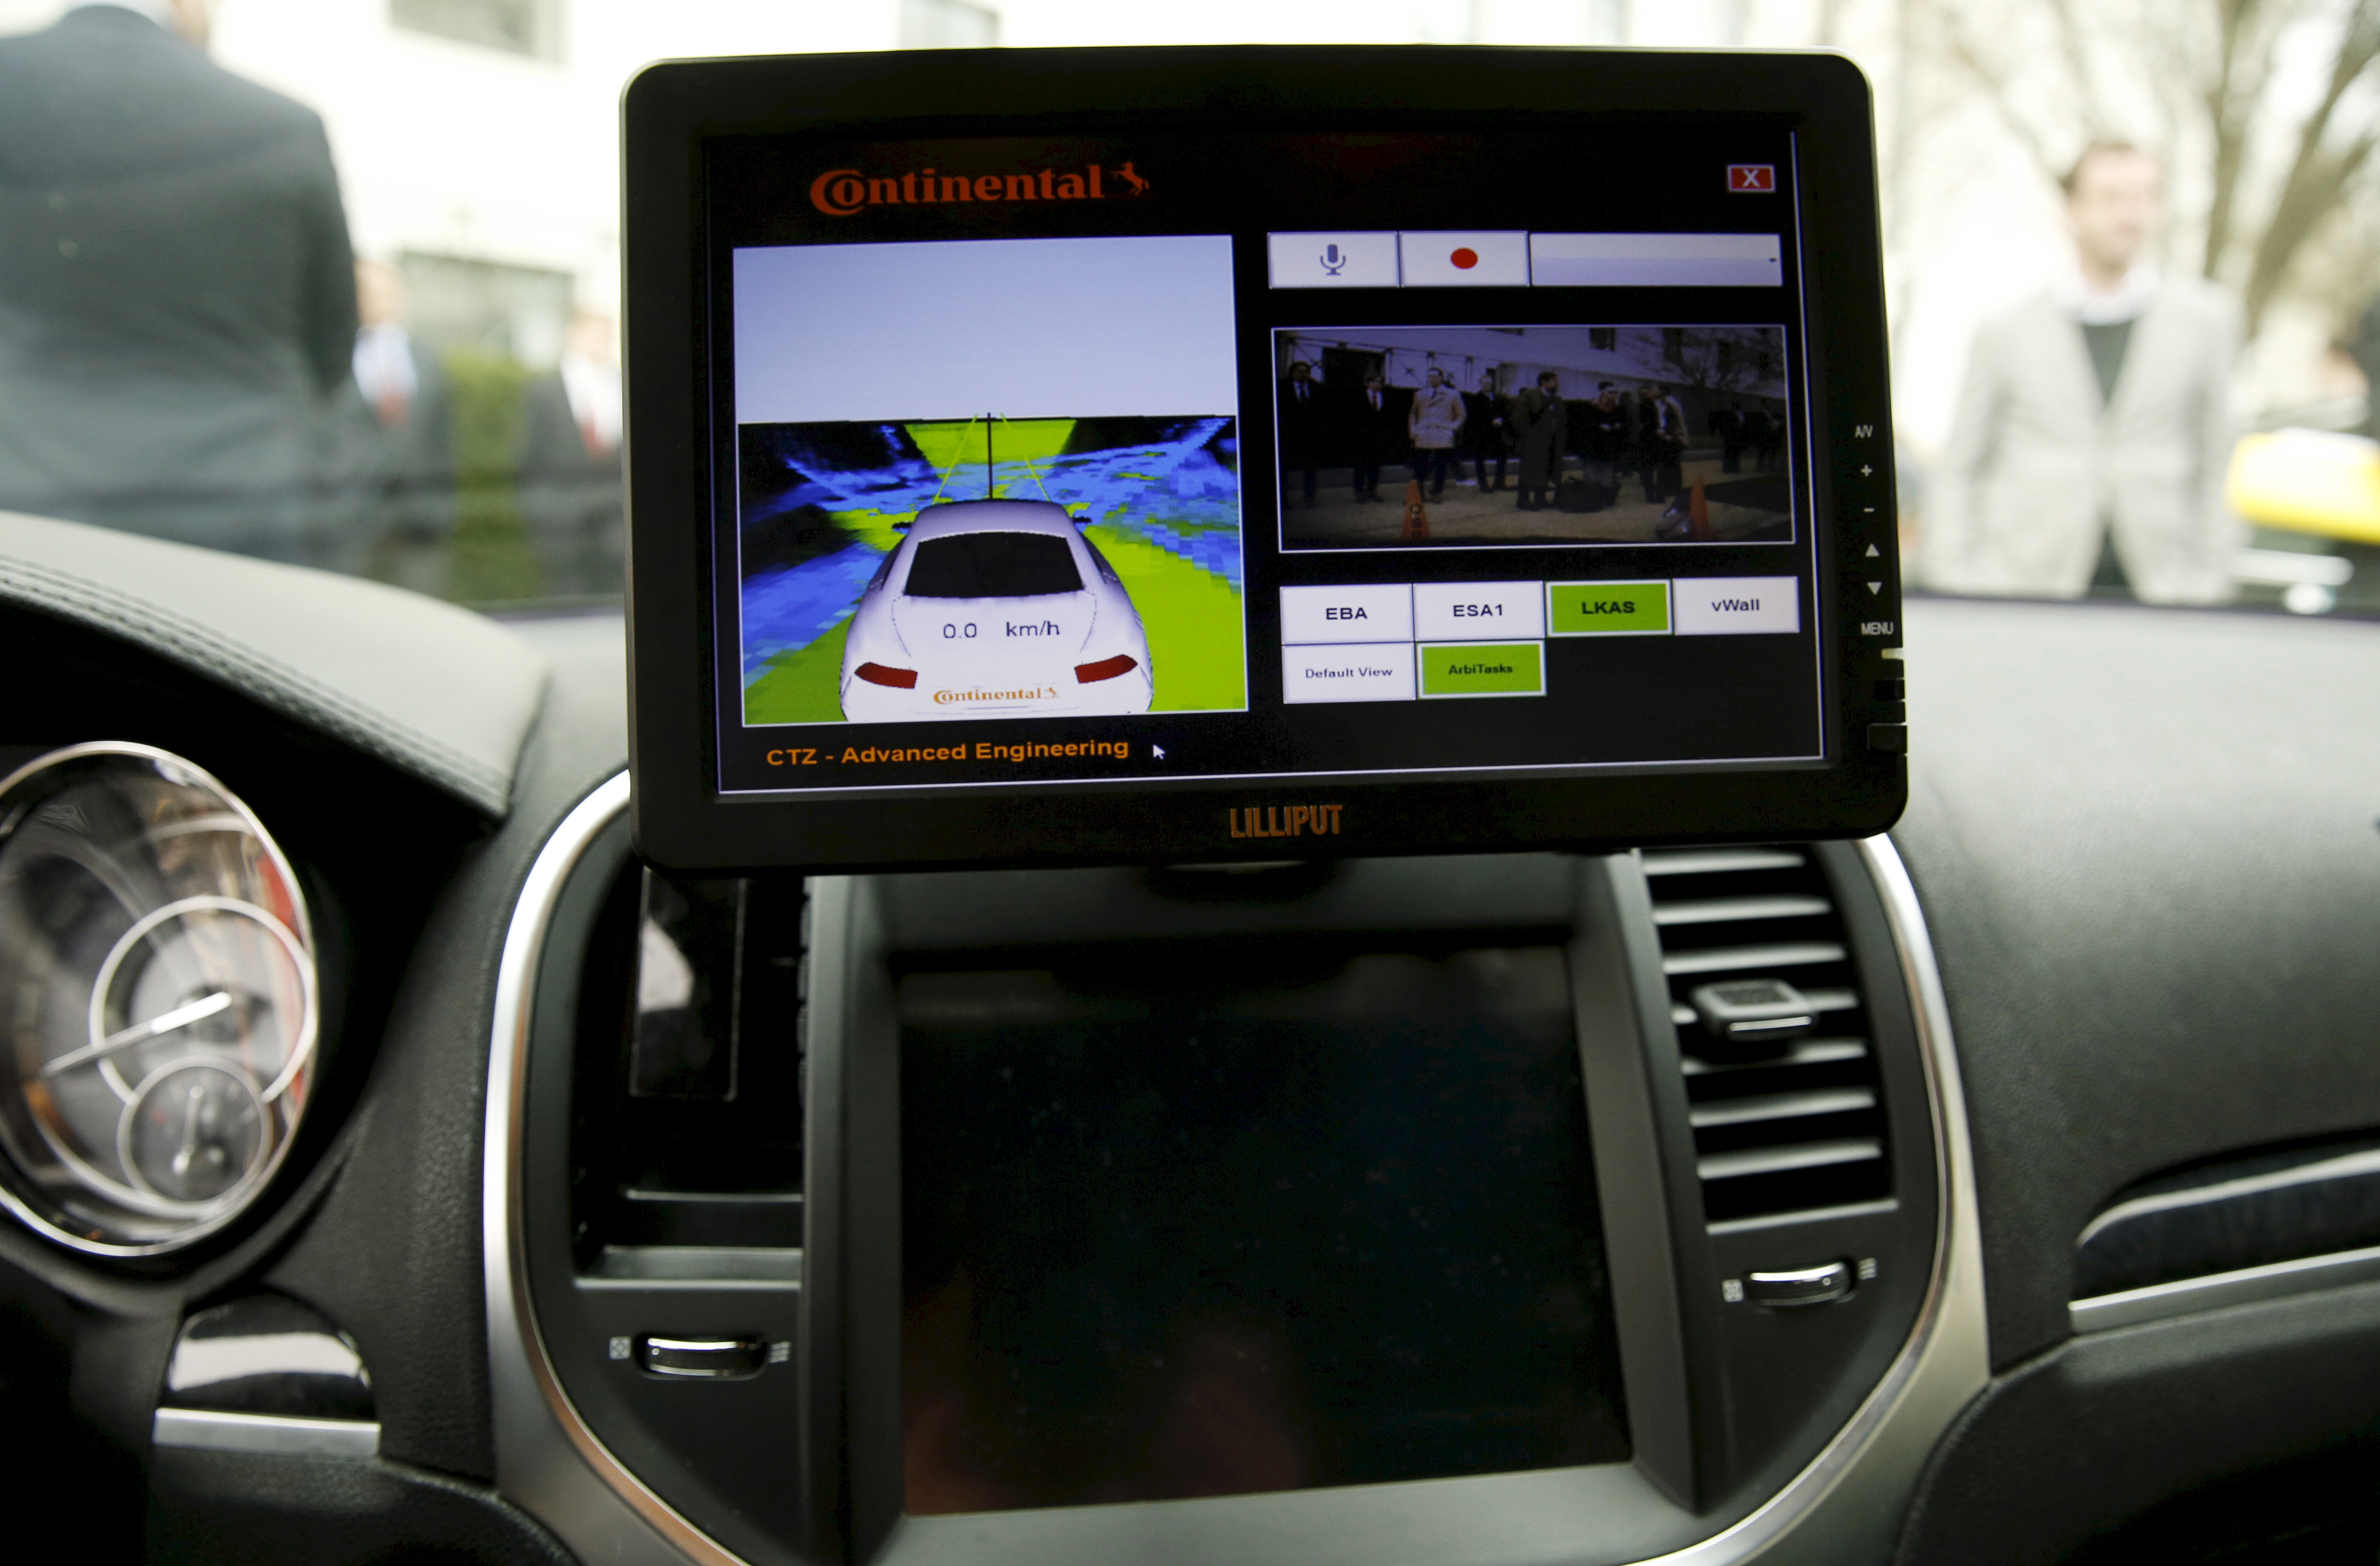 File picture shows computer screen in prototype Continental Chrysler 300C sedan on Capitol Hill in Washington